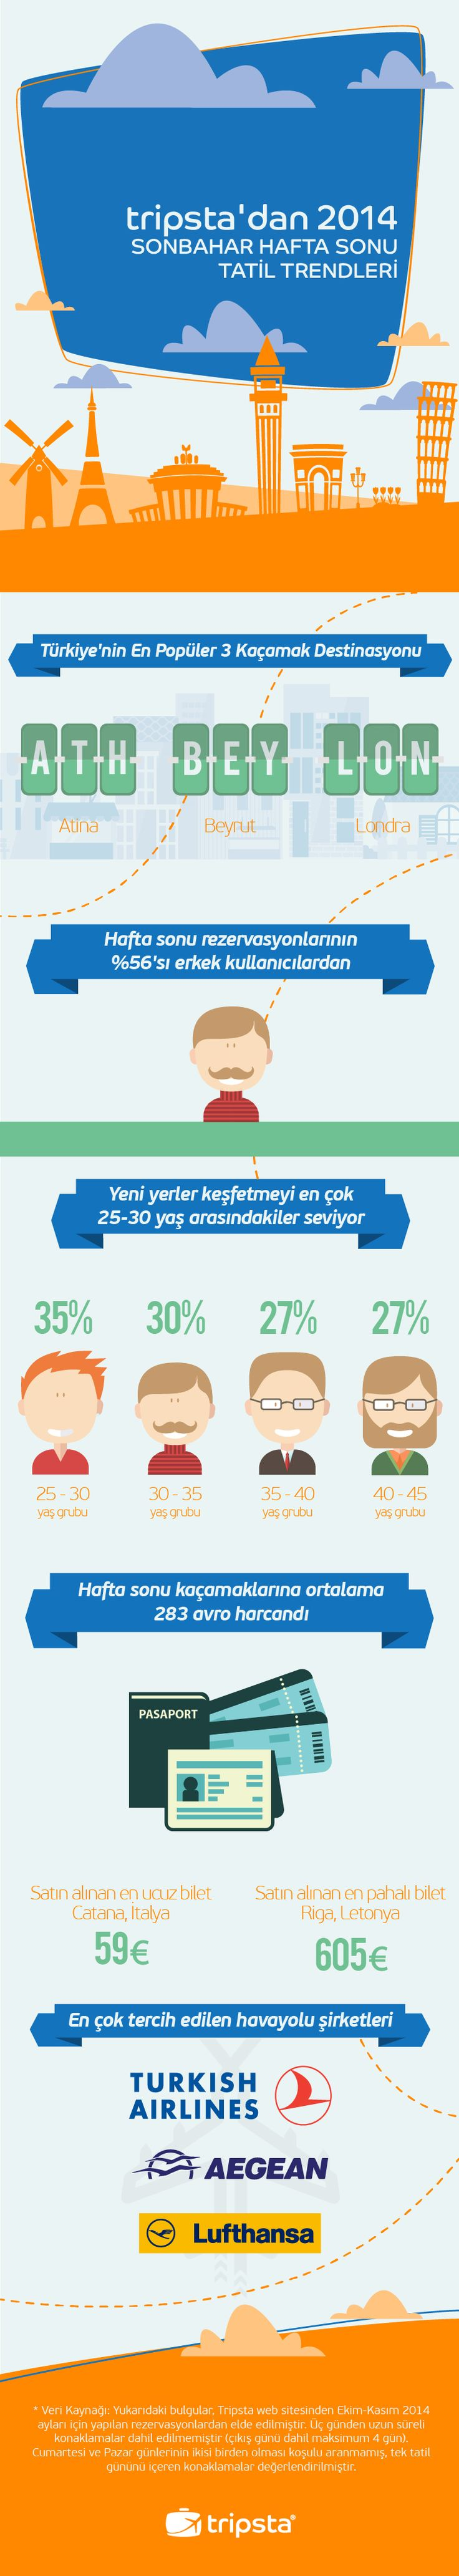 City Break Trends for Turksish by Tripsta.com.tr #infographic #tripsta #trends #citybreaks